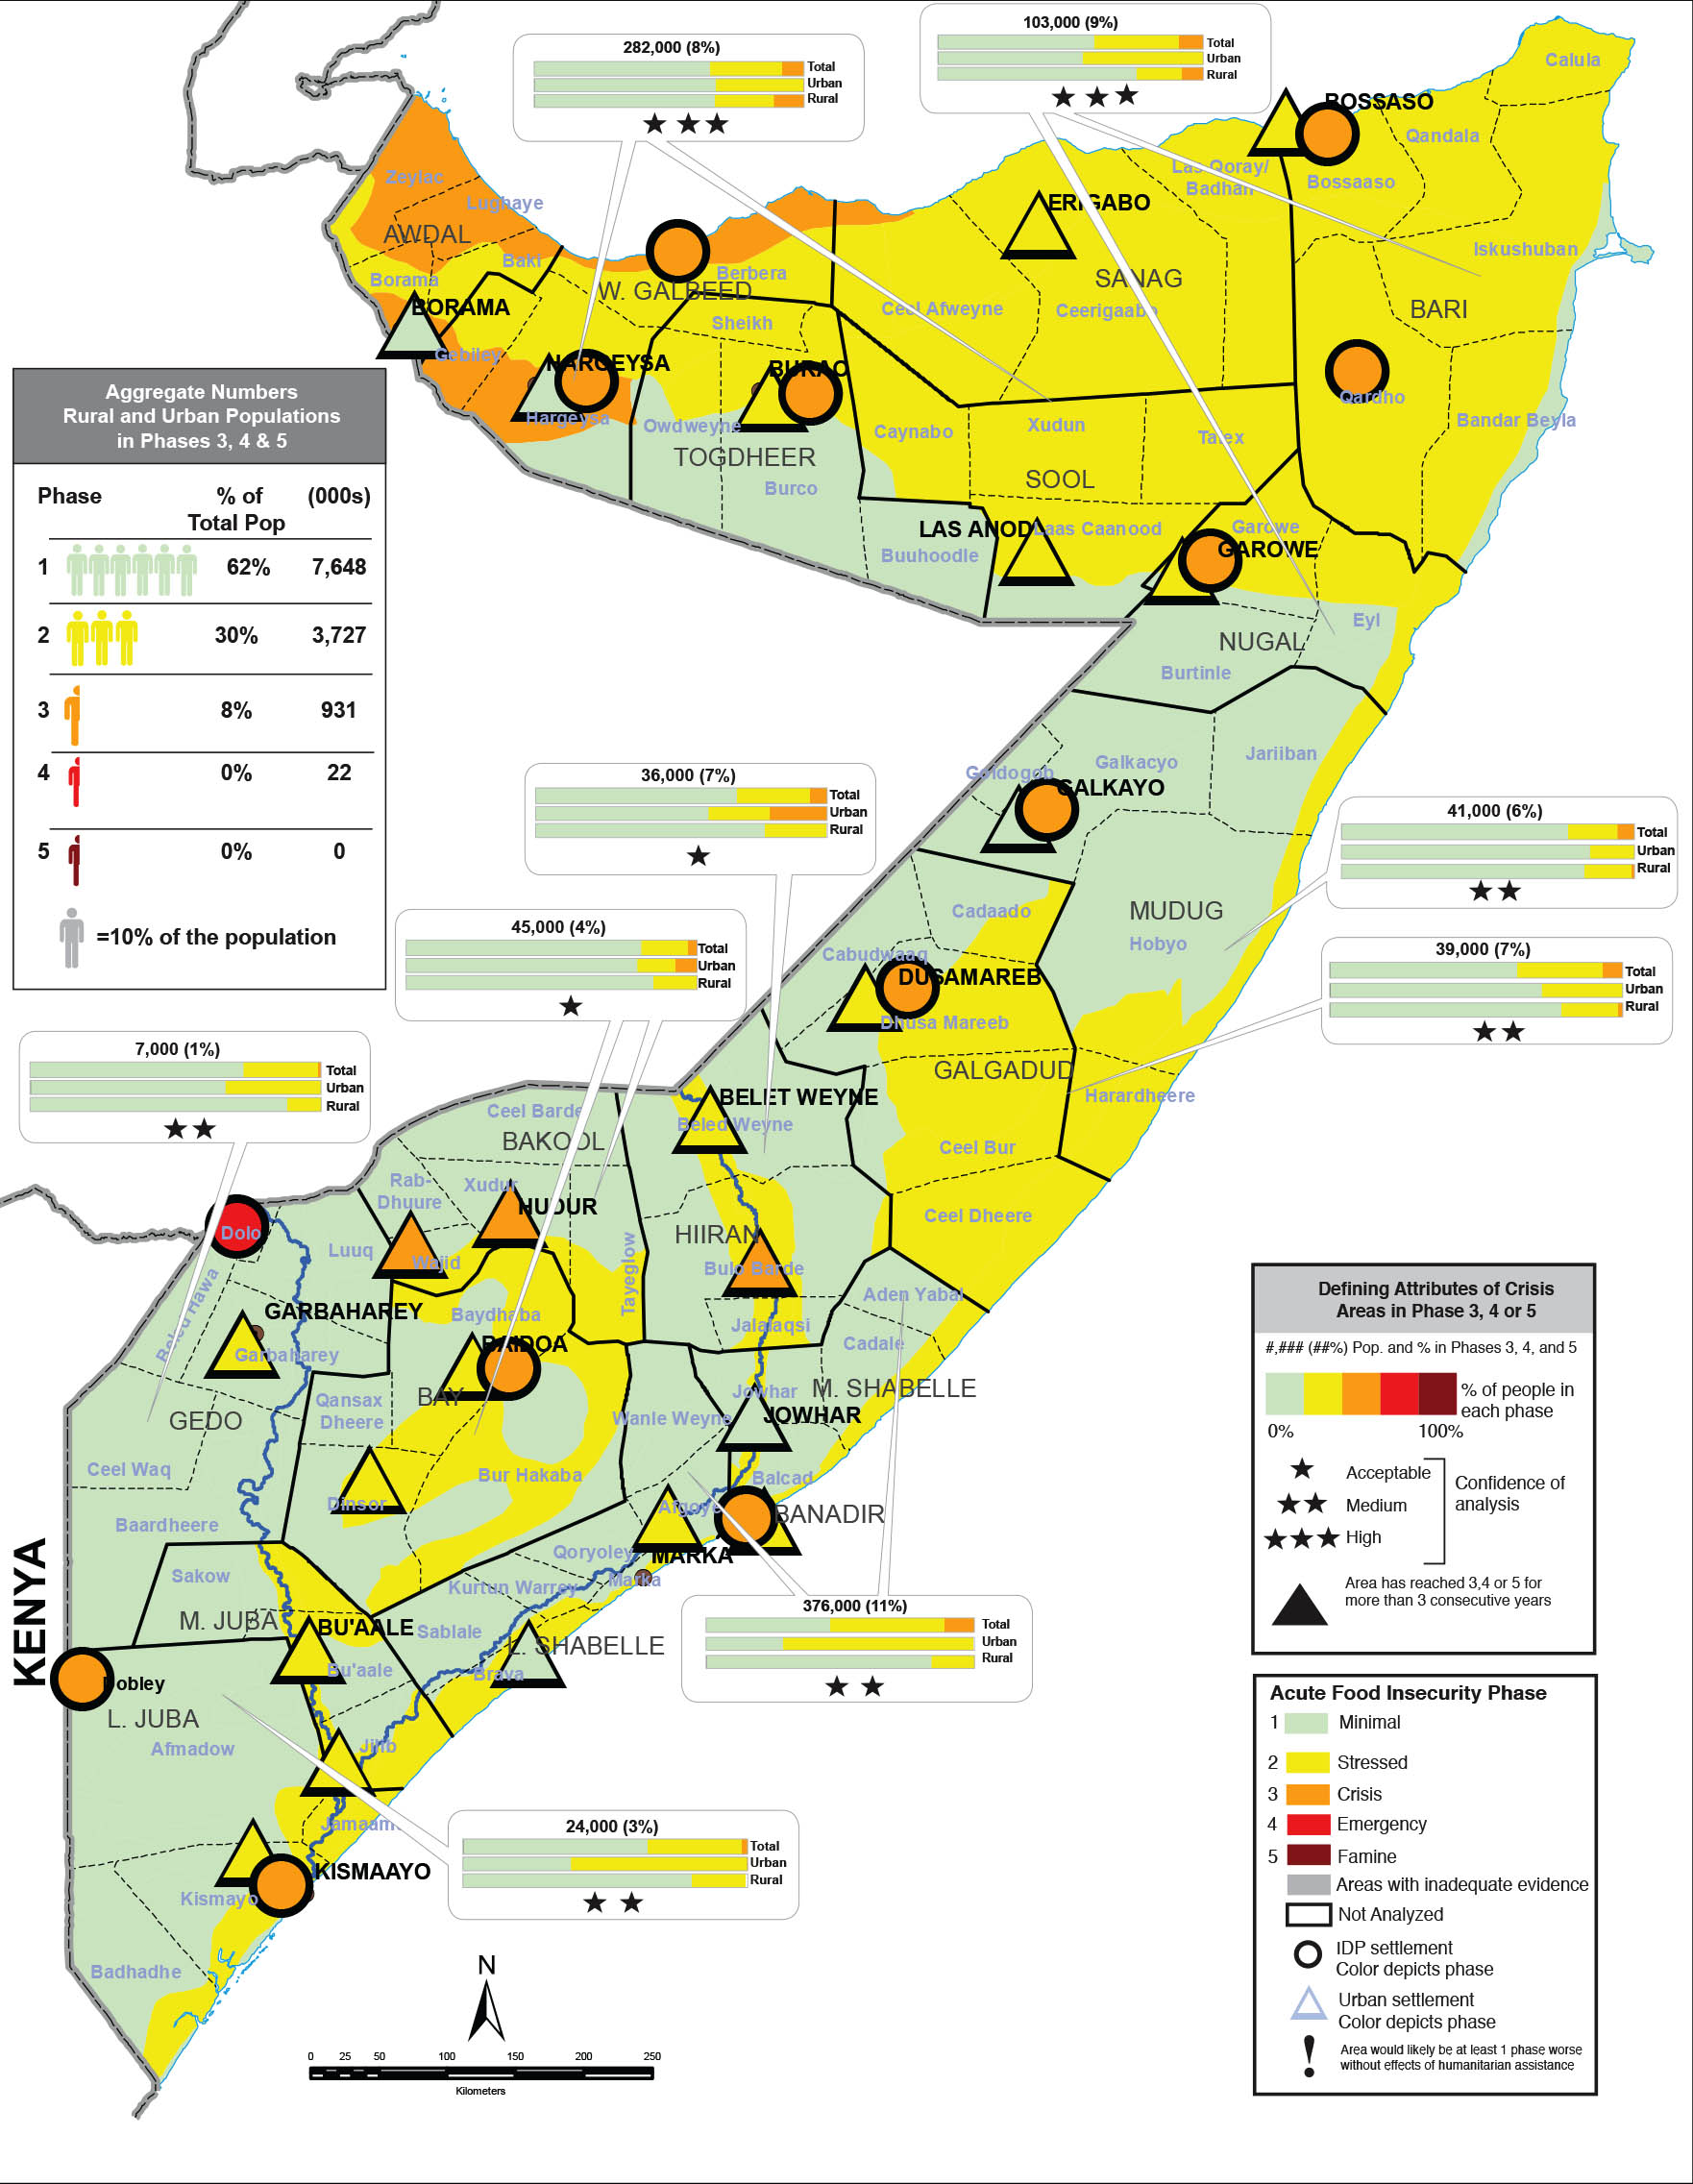 Somalia food security map Feb 2016 - FSNAU/FEWSNET